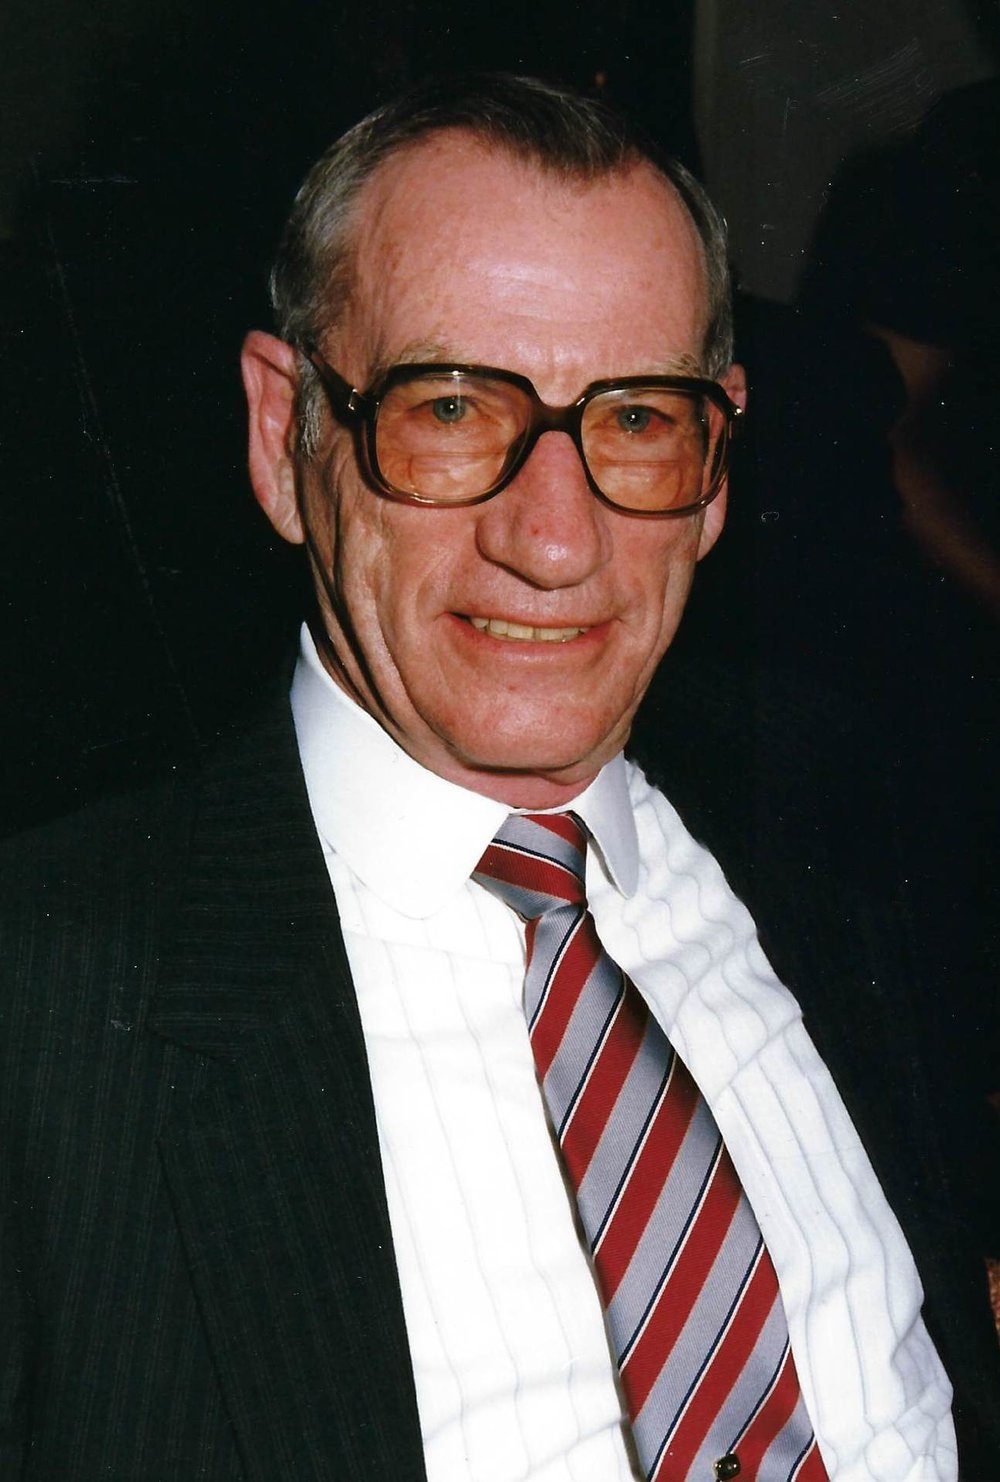 don campbell_cropped.jpg